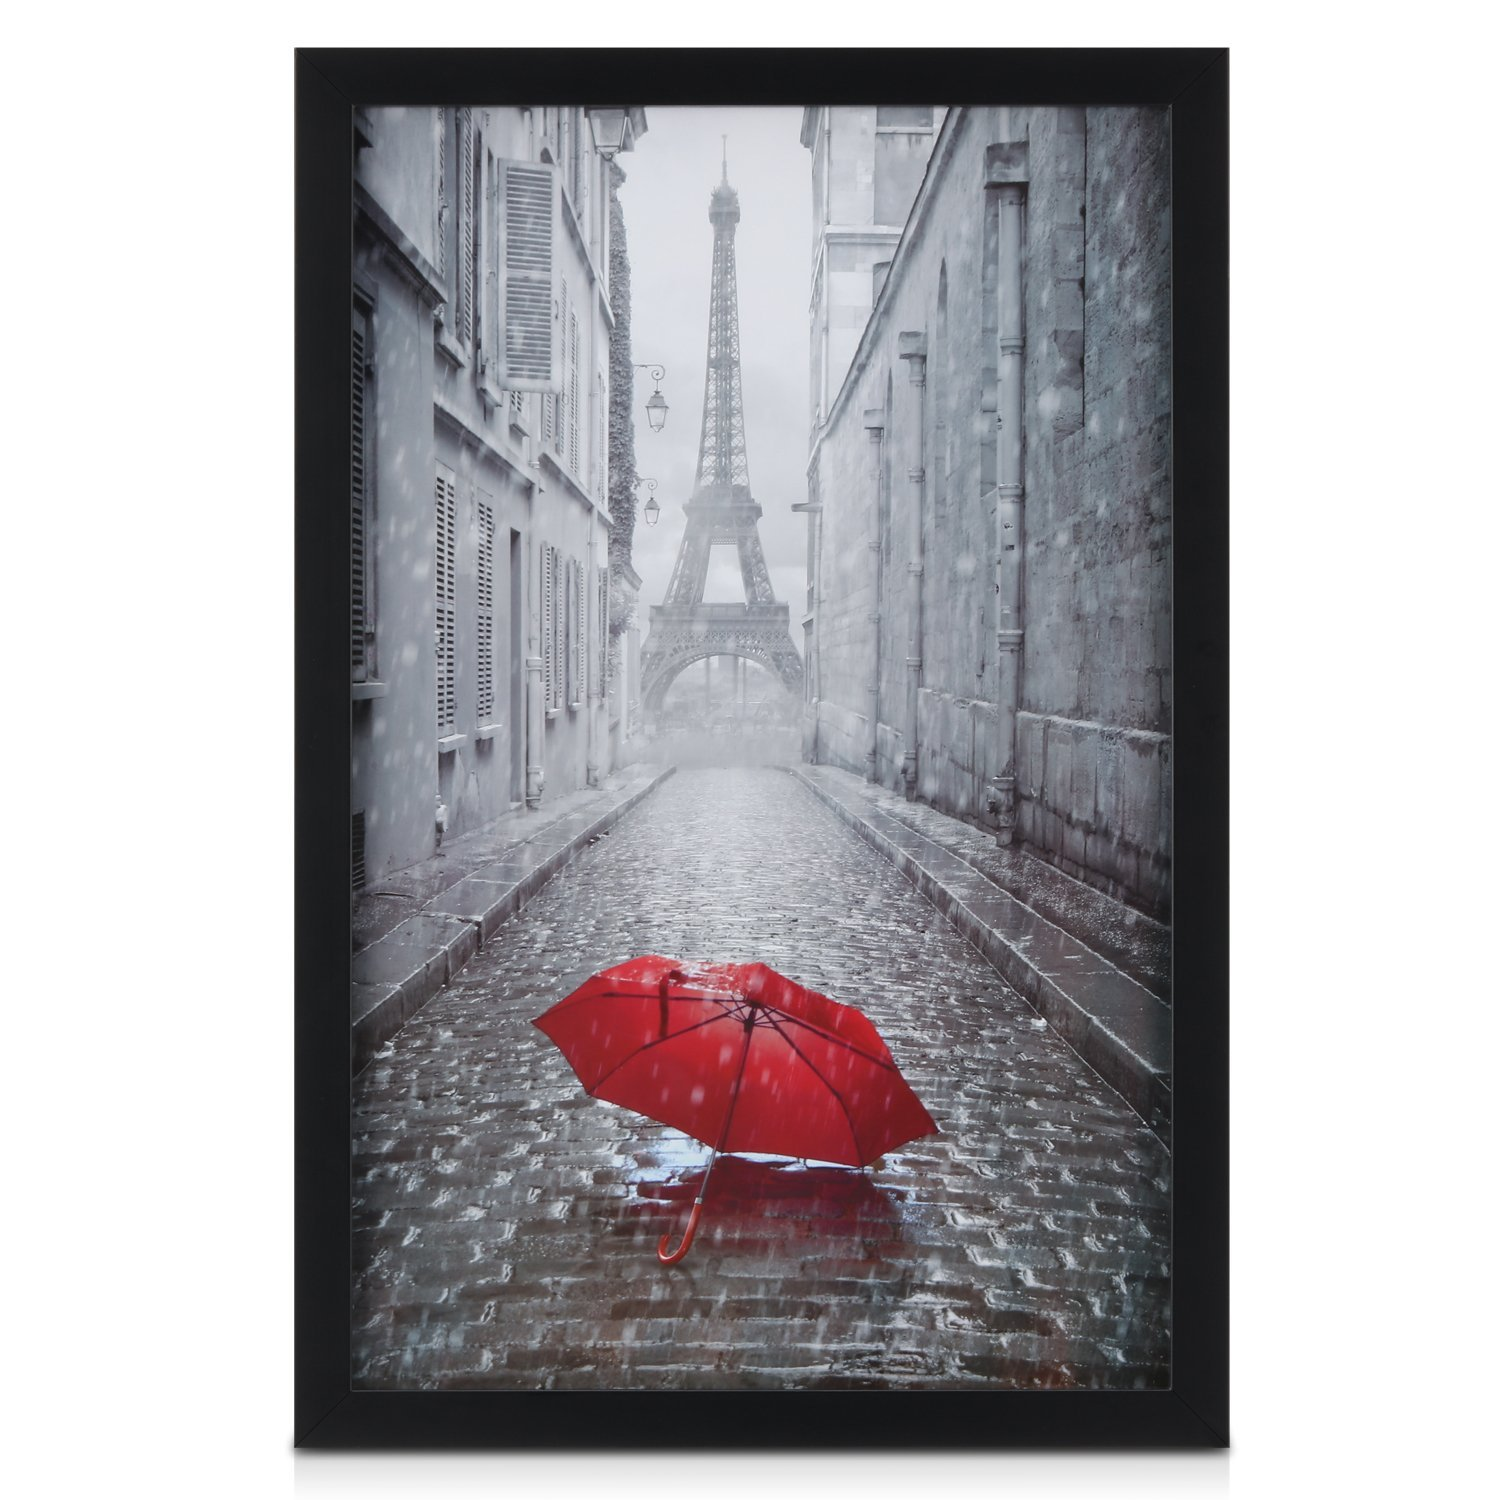 ONE WALL 11x17 Picture Frame, Tempered Glass Black Photo Poster Frame, Wall Mounting Material Included by ONE WALL